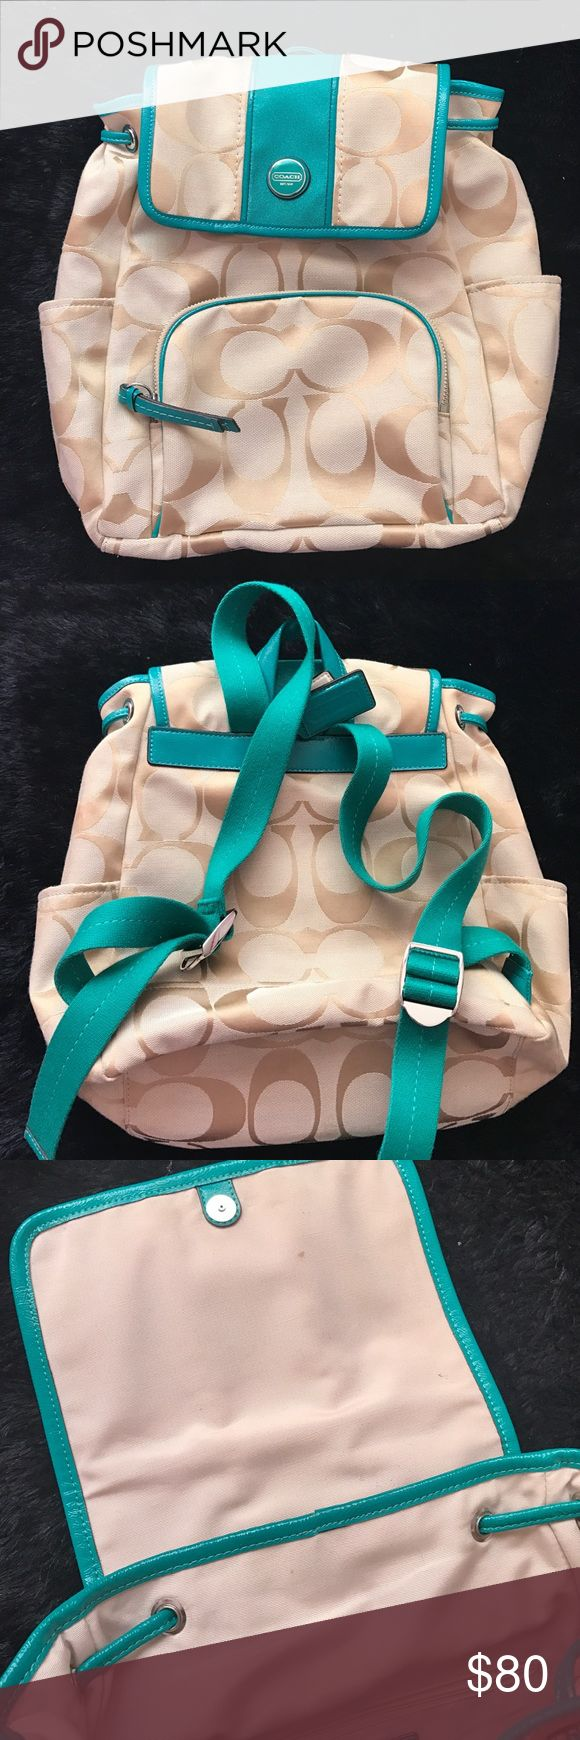 Coach Backpack Bookbag Authentic Coach Teal and Beige Backpack: Two exterior open pockets, one exterior zip pocket (with about a 2 inch blue pen mark), two interior pockets, one interior zip pocket. Coach Bags Backpacks